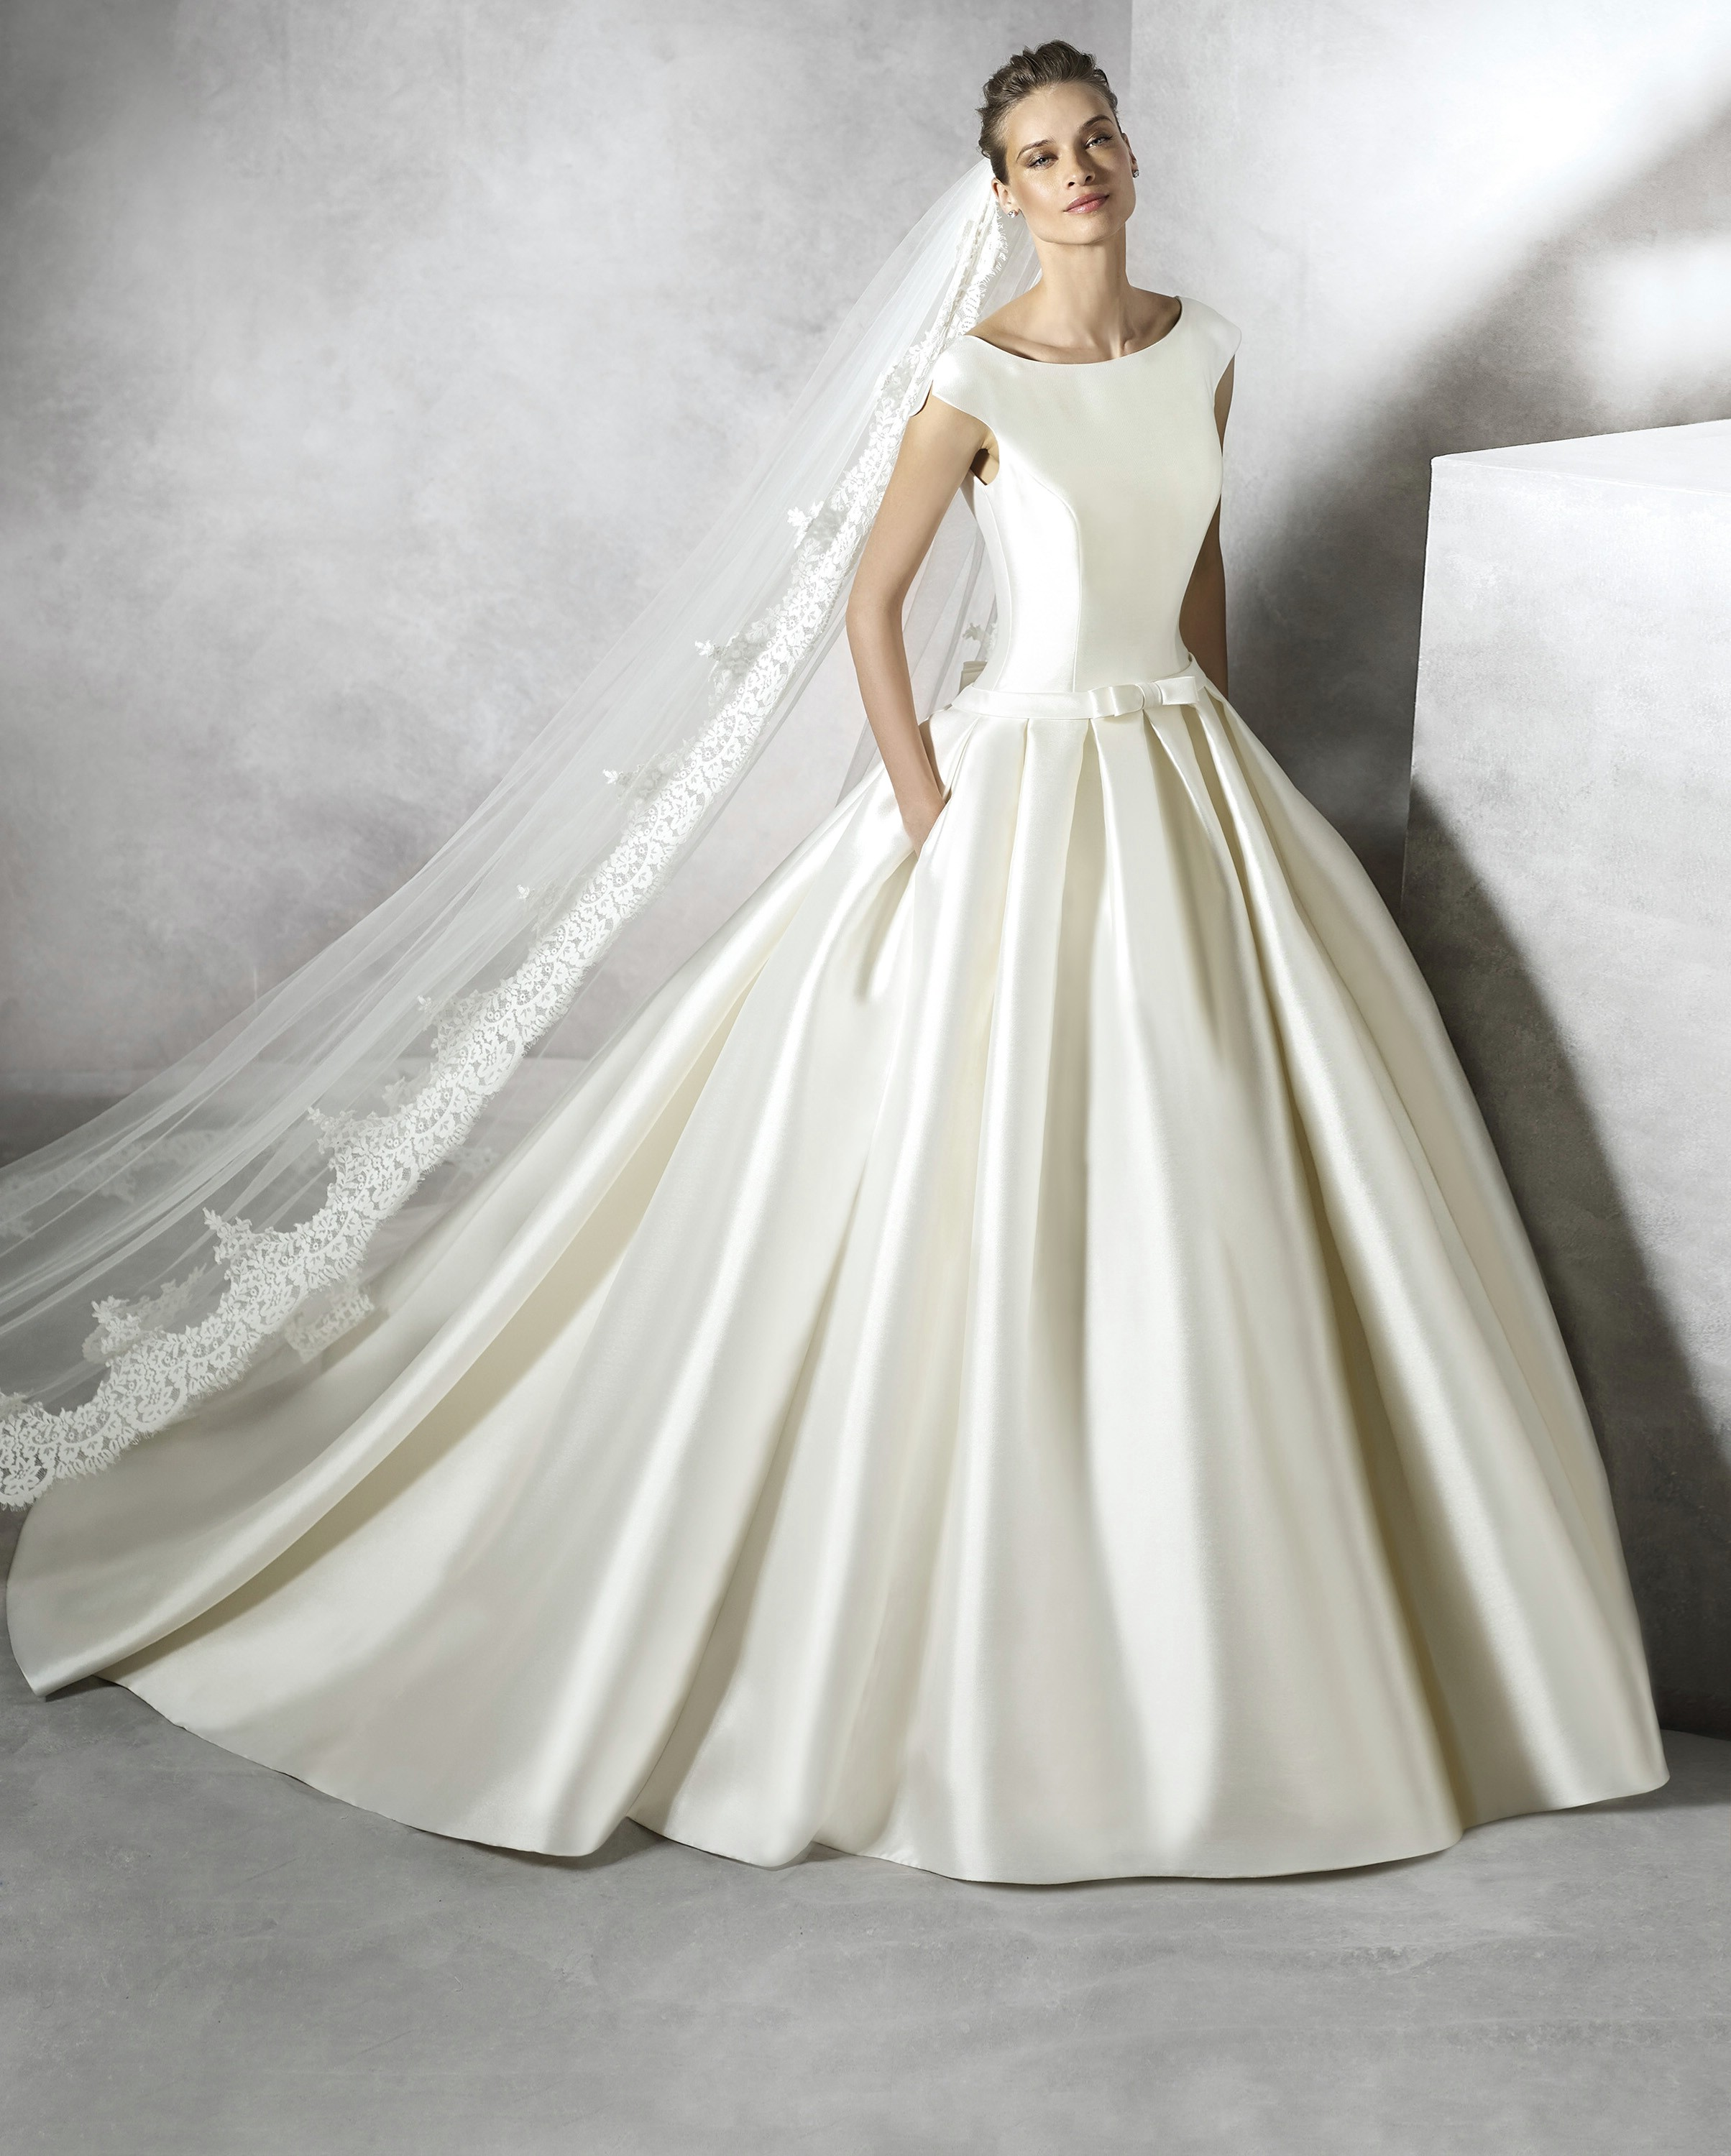 Wedding dresses wedding dresses in redlands for Discount wedding dress stores near me